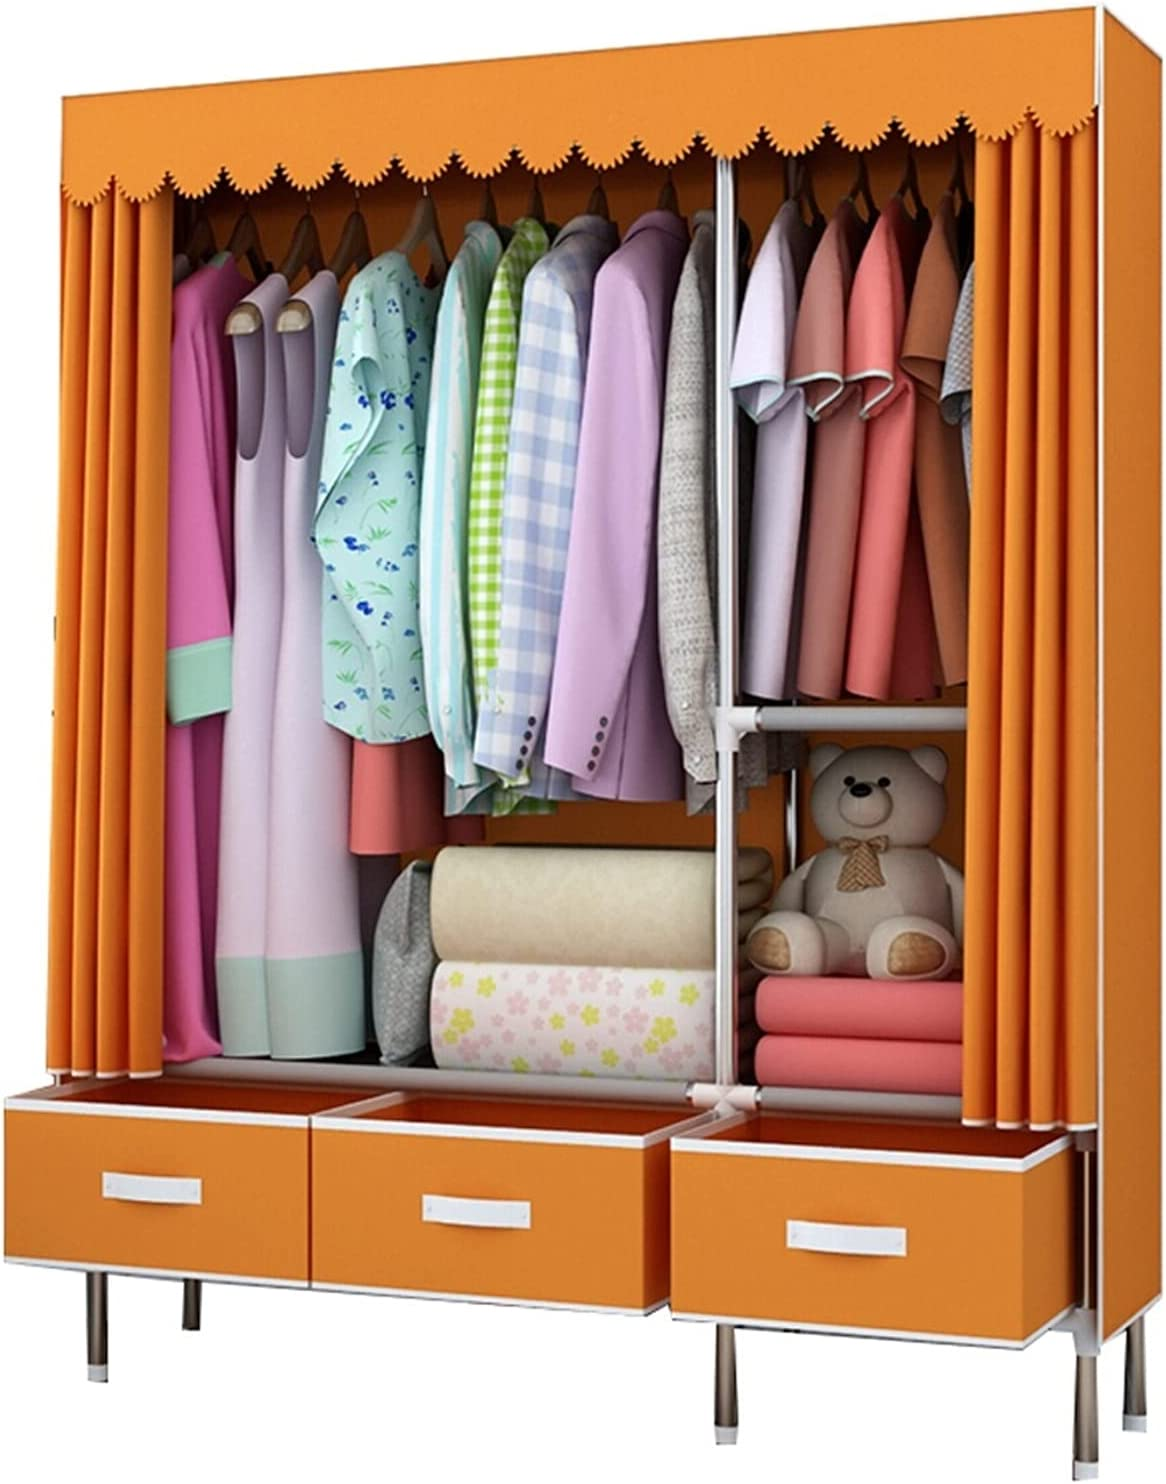 Cheap mail order shopping Wardrobe Ranking TOP20 Portable for Hanging Clothes Fabri Drawer with